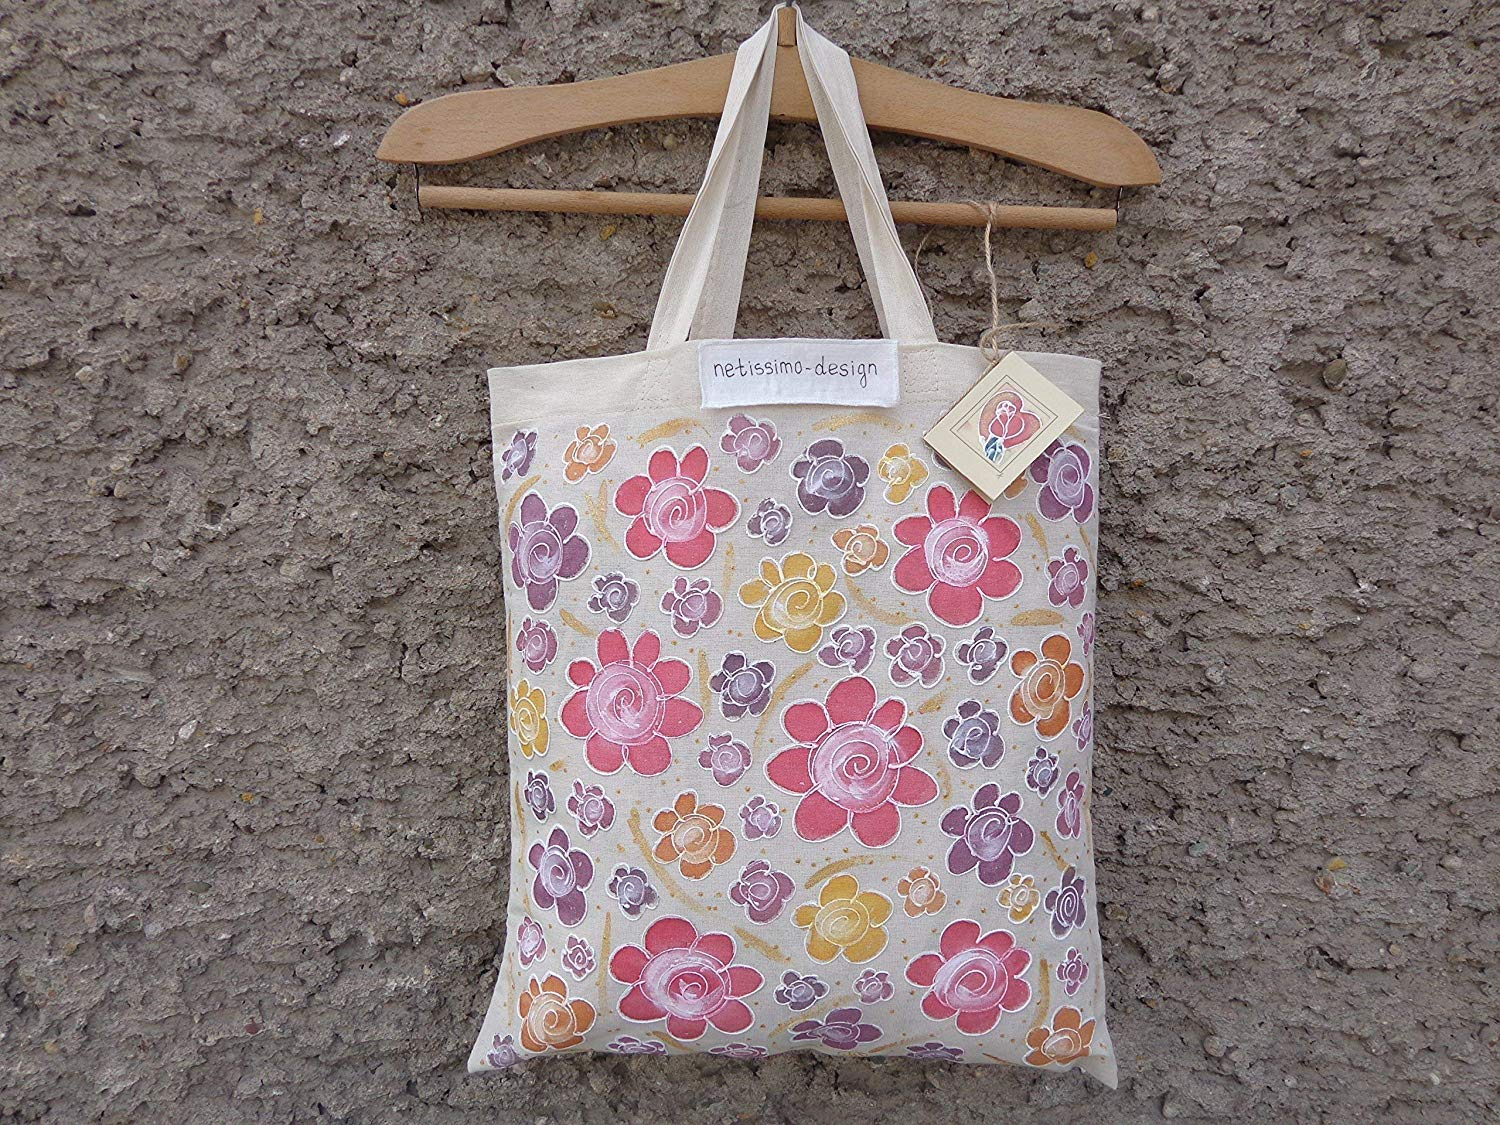 Sale!!!15% Off,Hand Painted Floral Valentine's Day Cotton Canvas Bag,Acrylic Painted Roses,From Weekend beach bag to Everyday Grocery Shopper,Floral Flowers Roses,Rose Canvas Tote